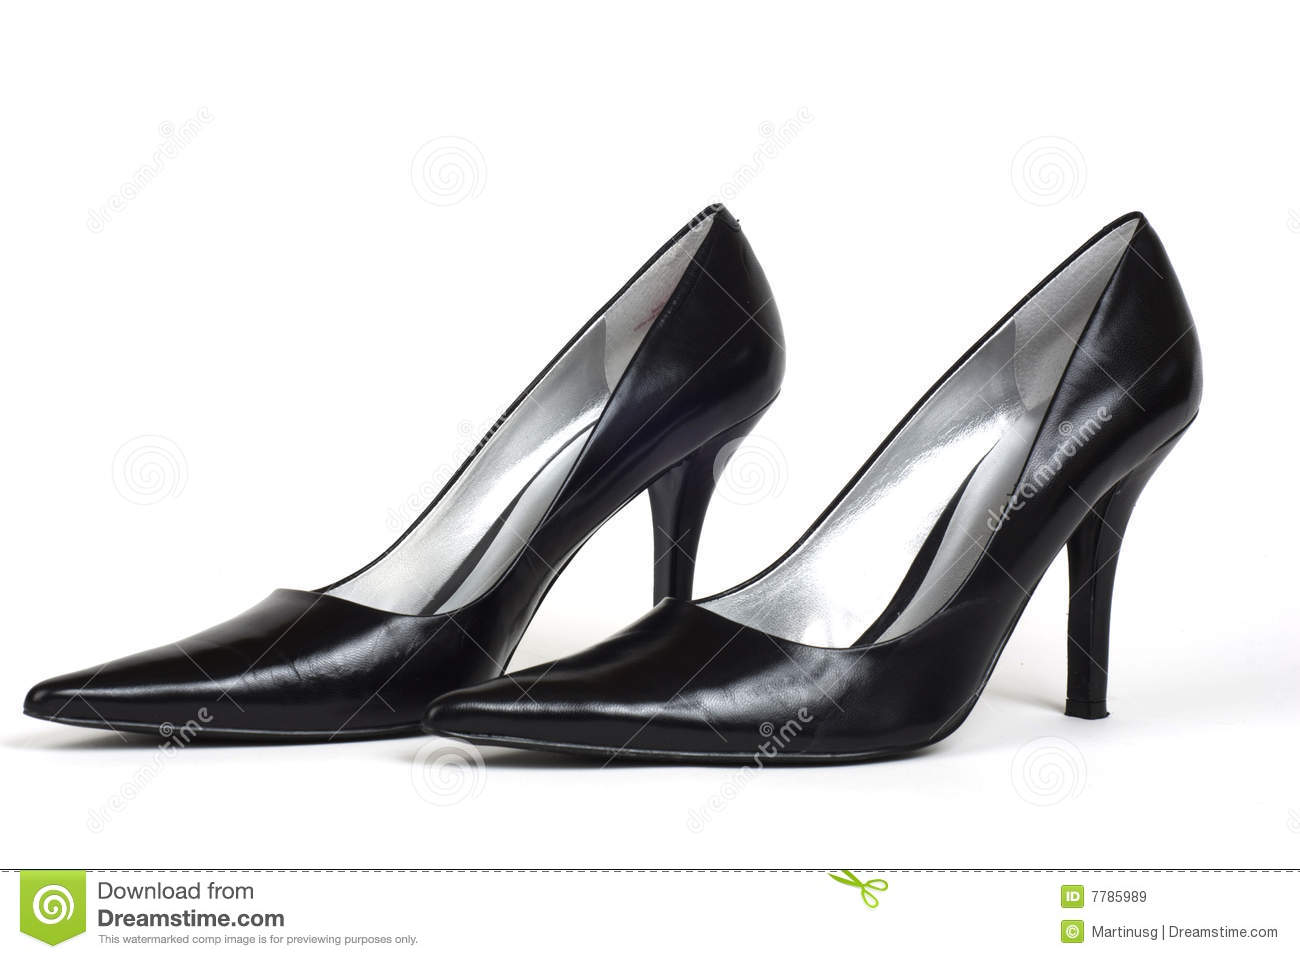 Pair Of Black Women&39s High-Heel Shoes Royalty Free Stock Images